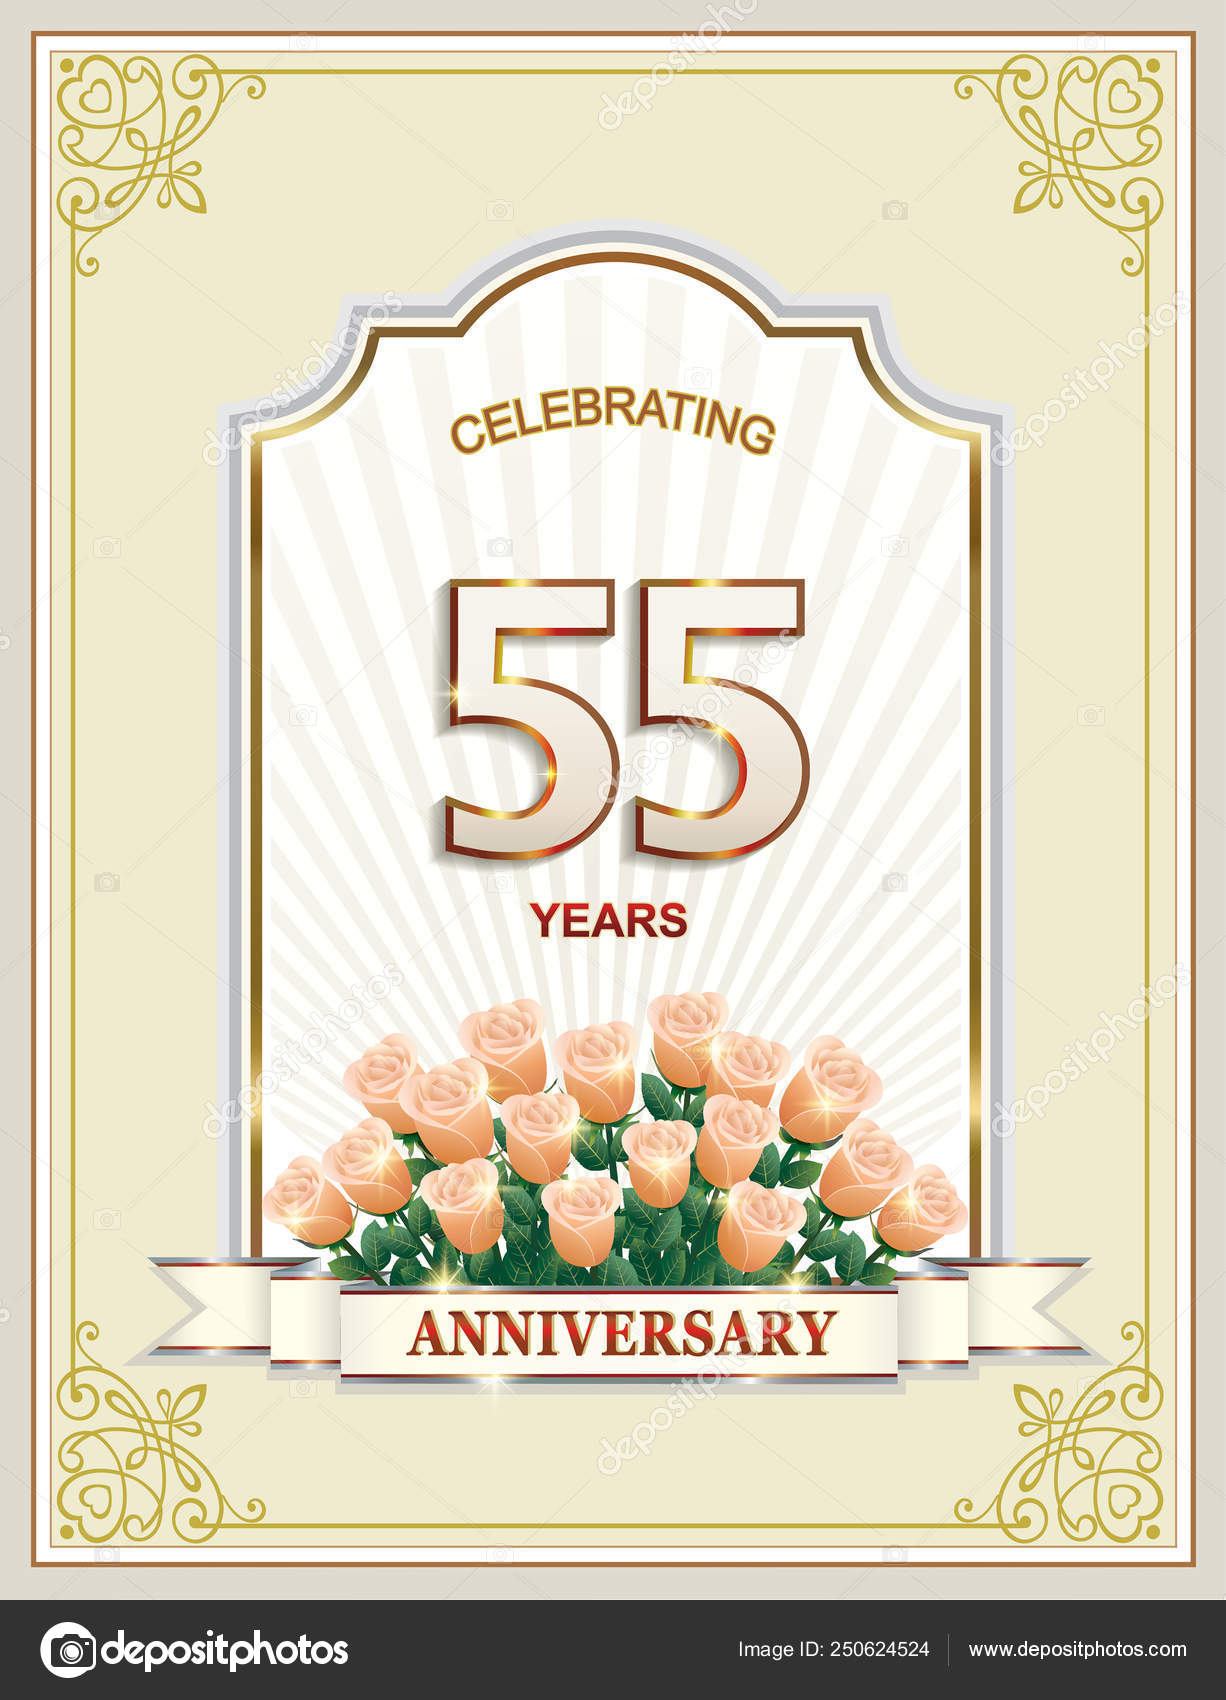 Anniversario Matrimonio 55 Anni.Anniversary 55 Years 80th Happy Birthday Greeting Card With A